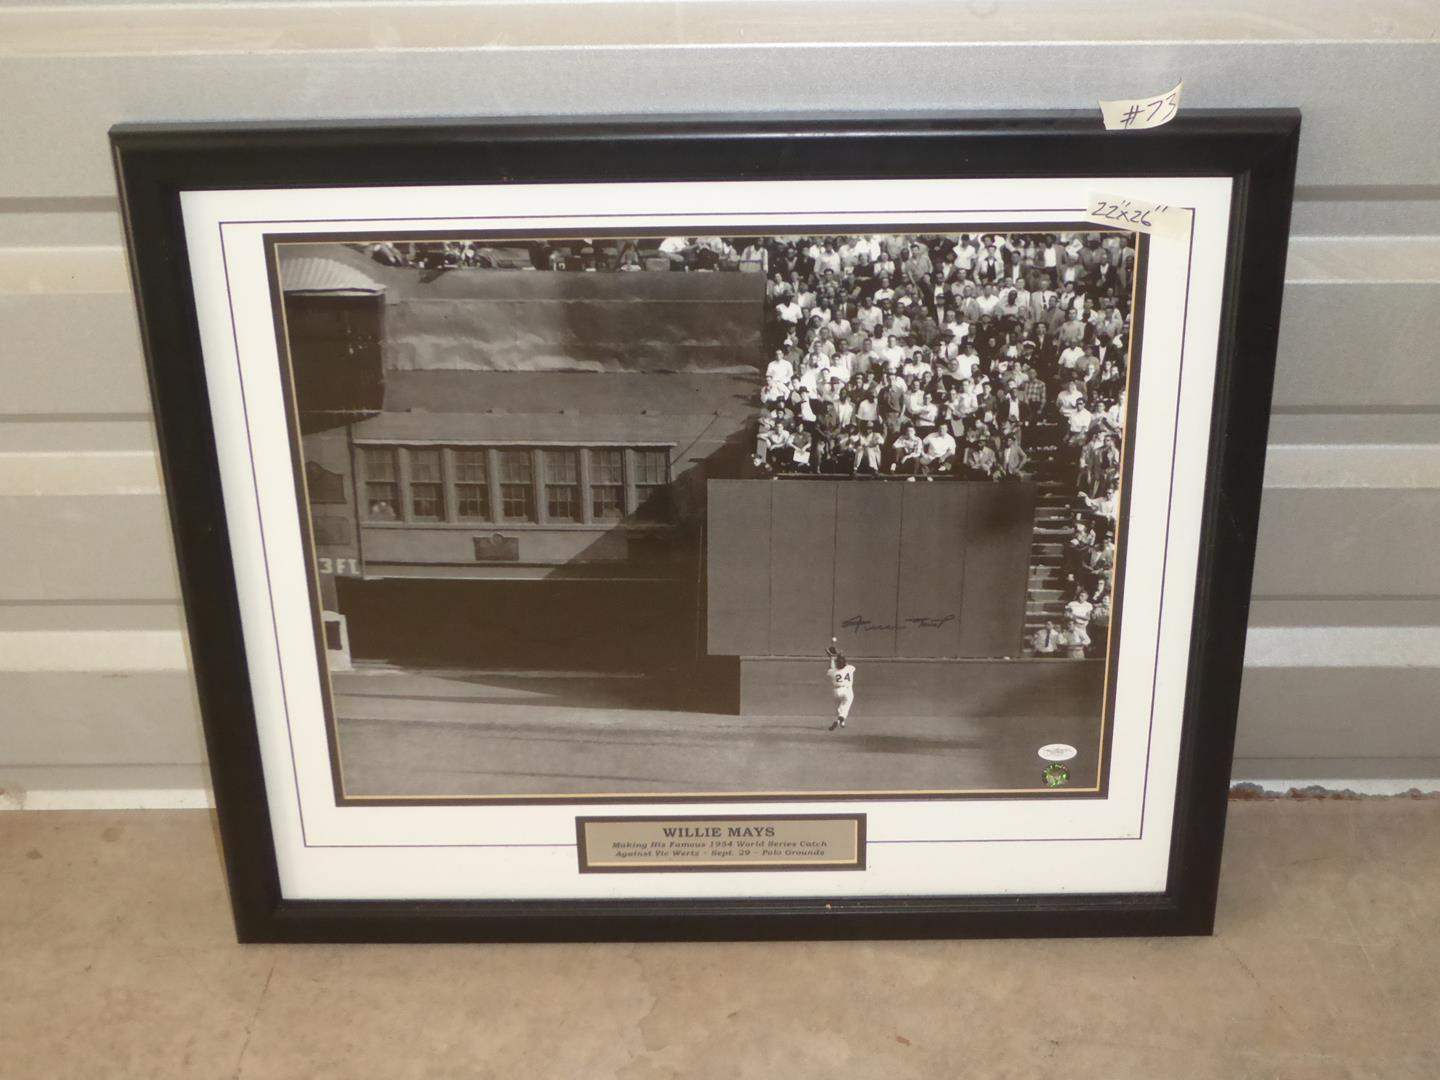 Lot # 73 - Framed Signed Willie Mays Photo Print (main image)